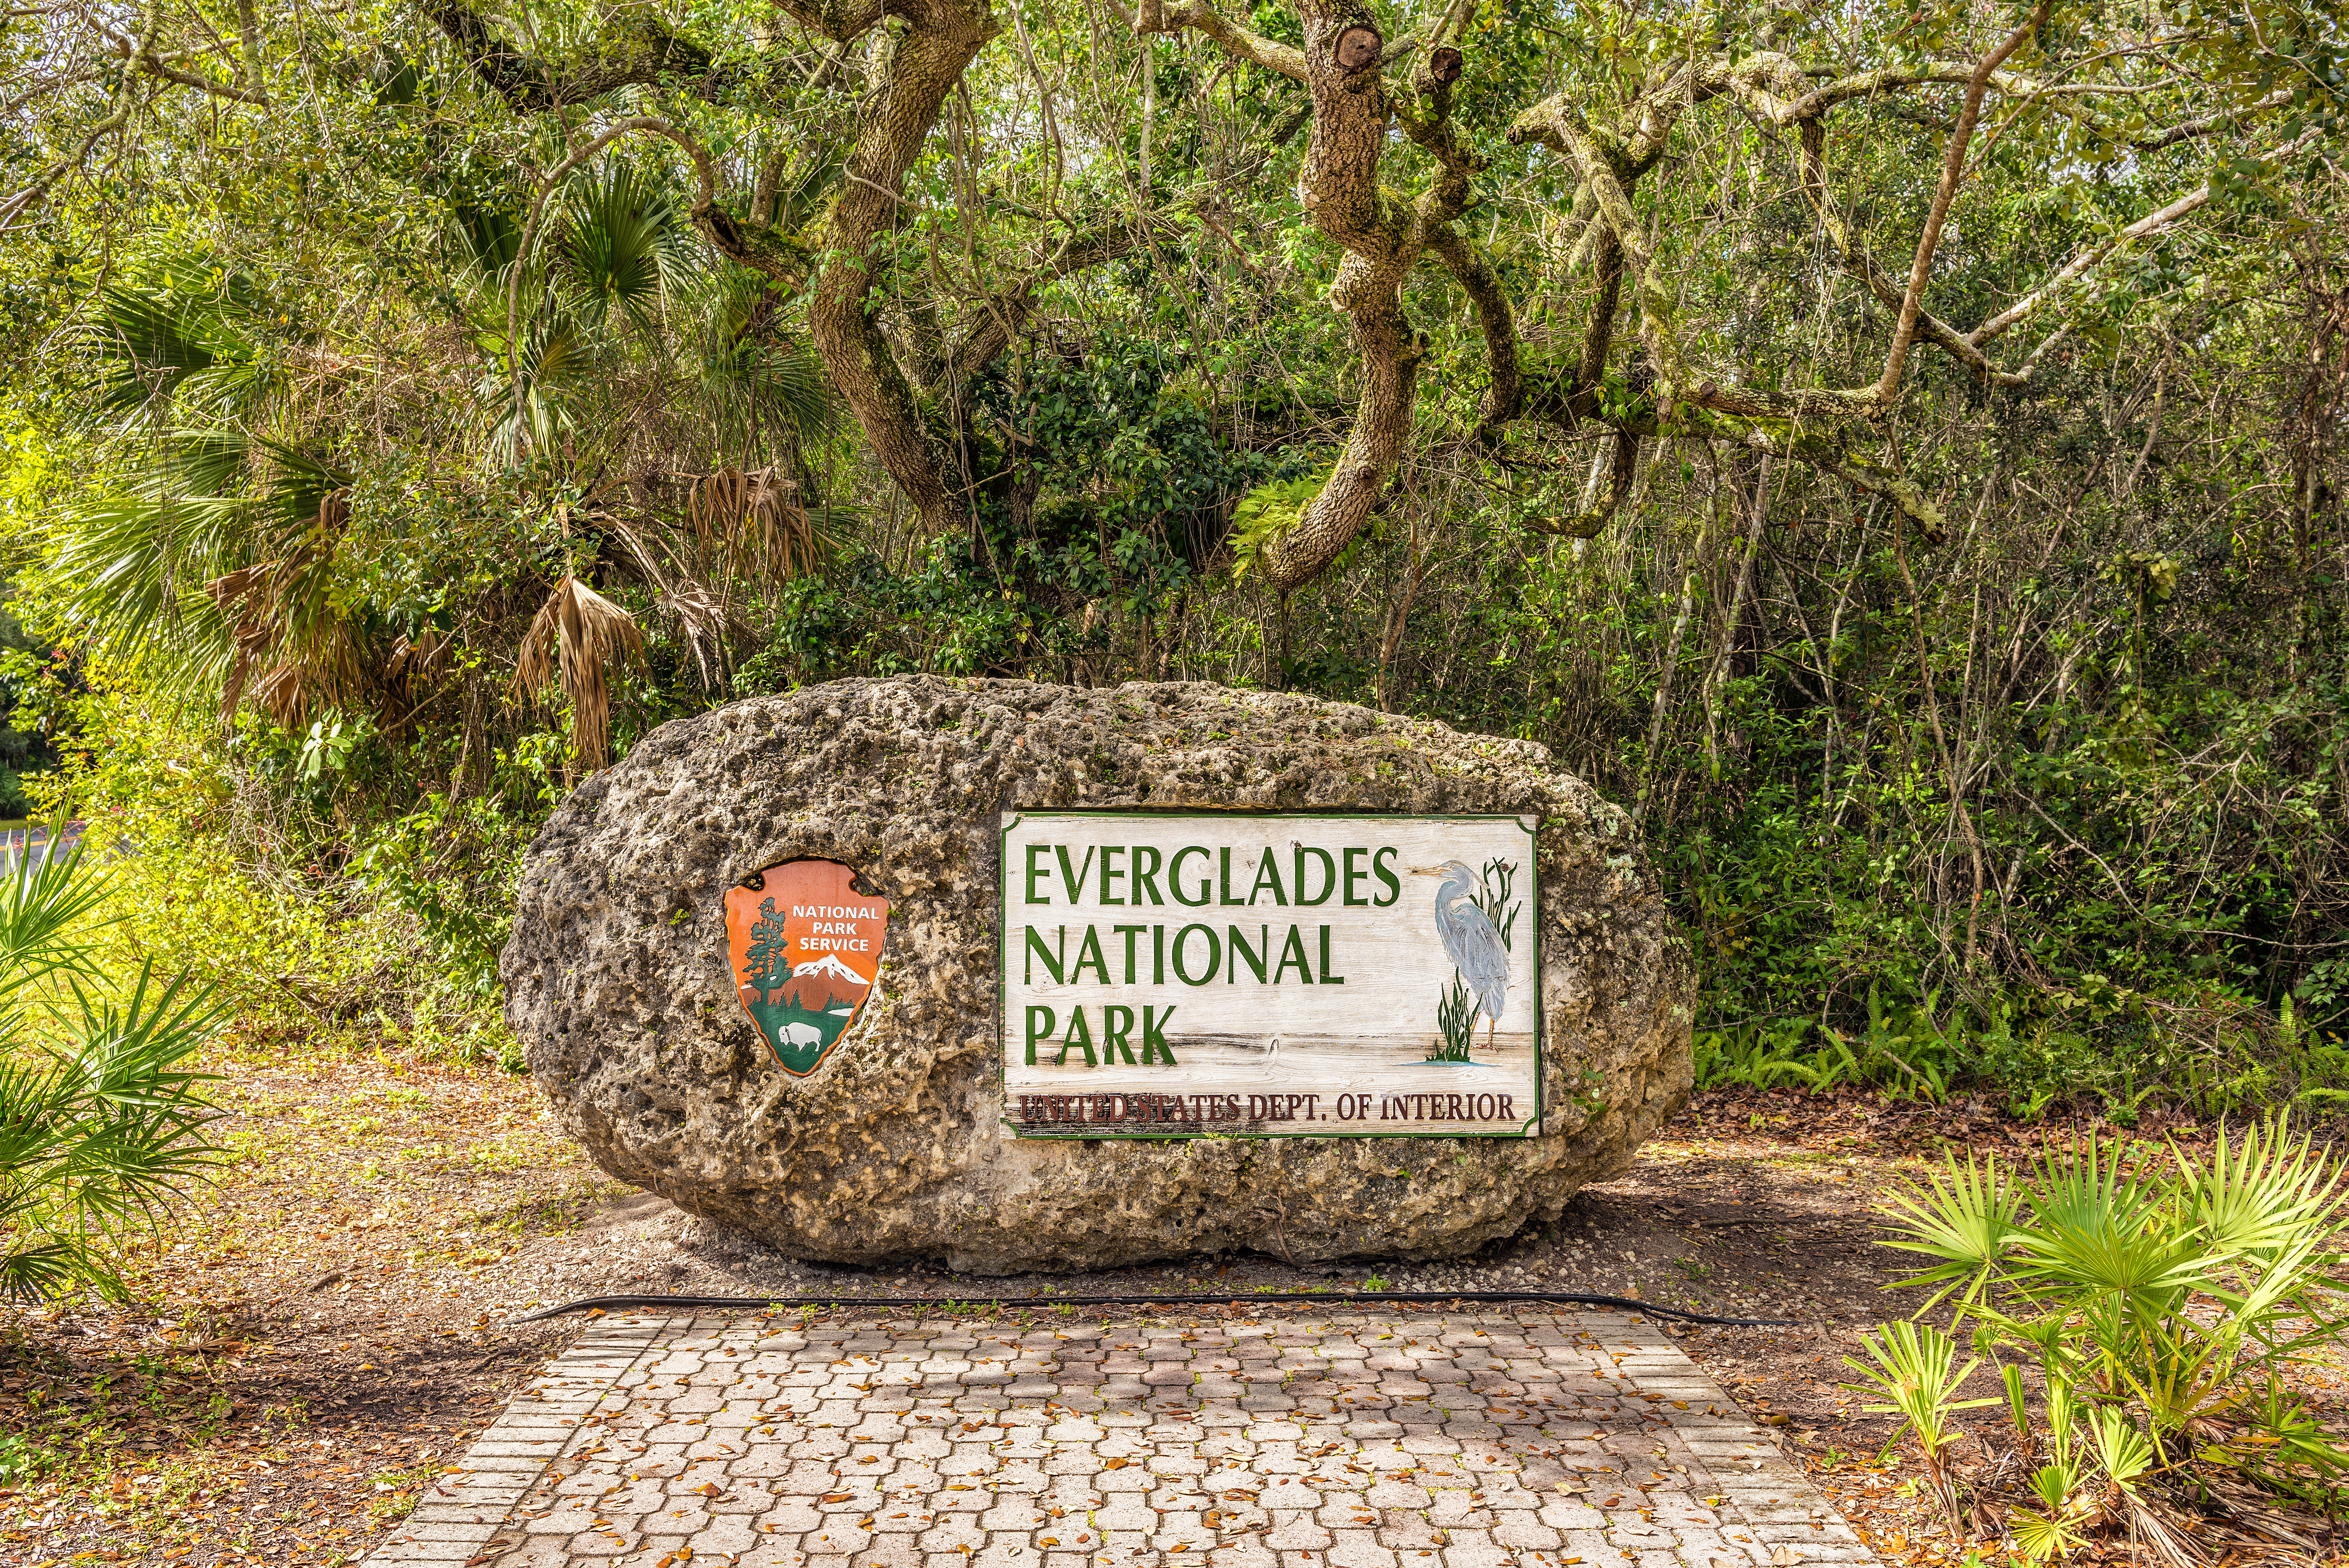 Entrance sign to Everglades National Park in Florida. (Shutterstock/Nick Fox)